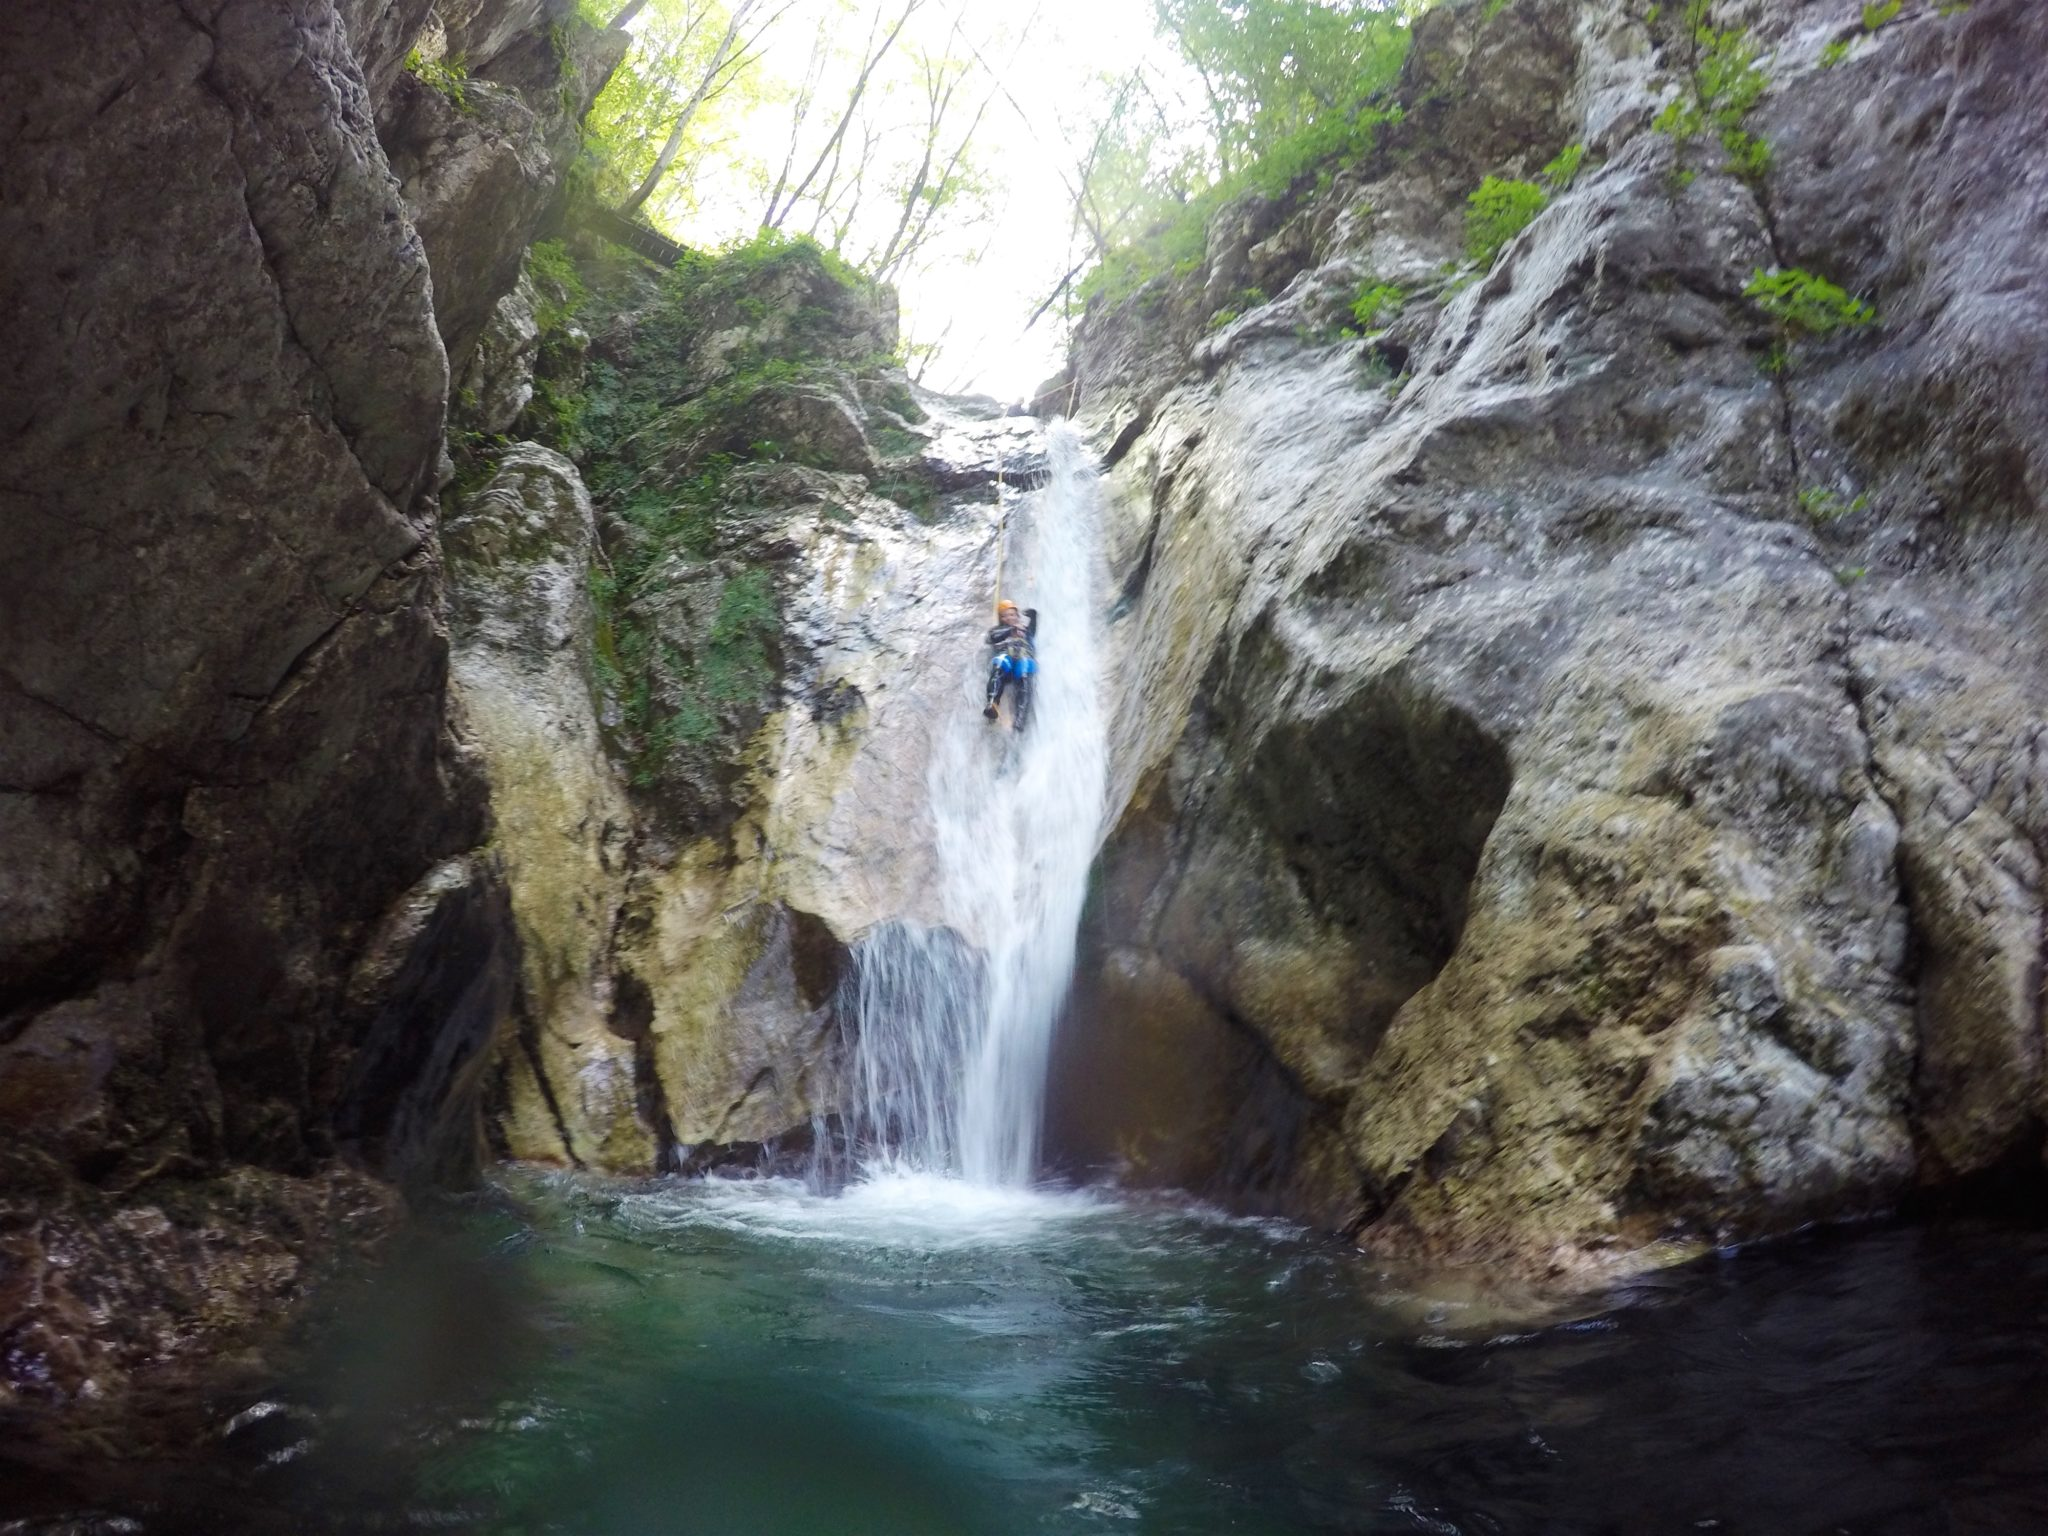 Canyoning in Susec, Slovenia